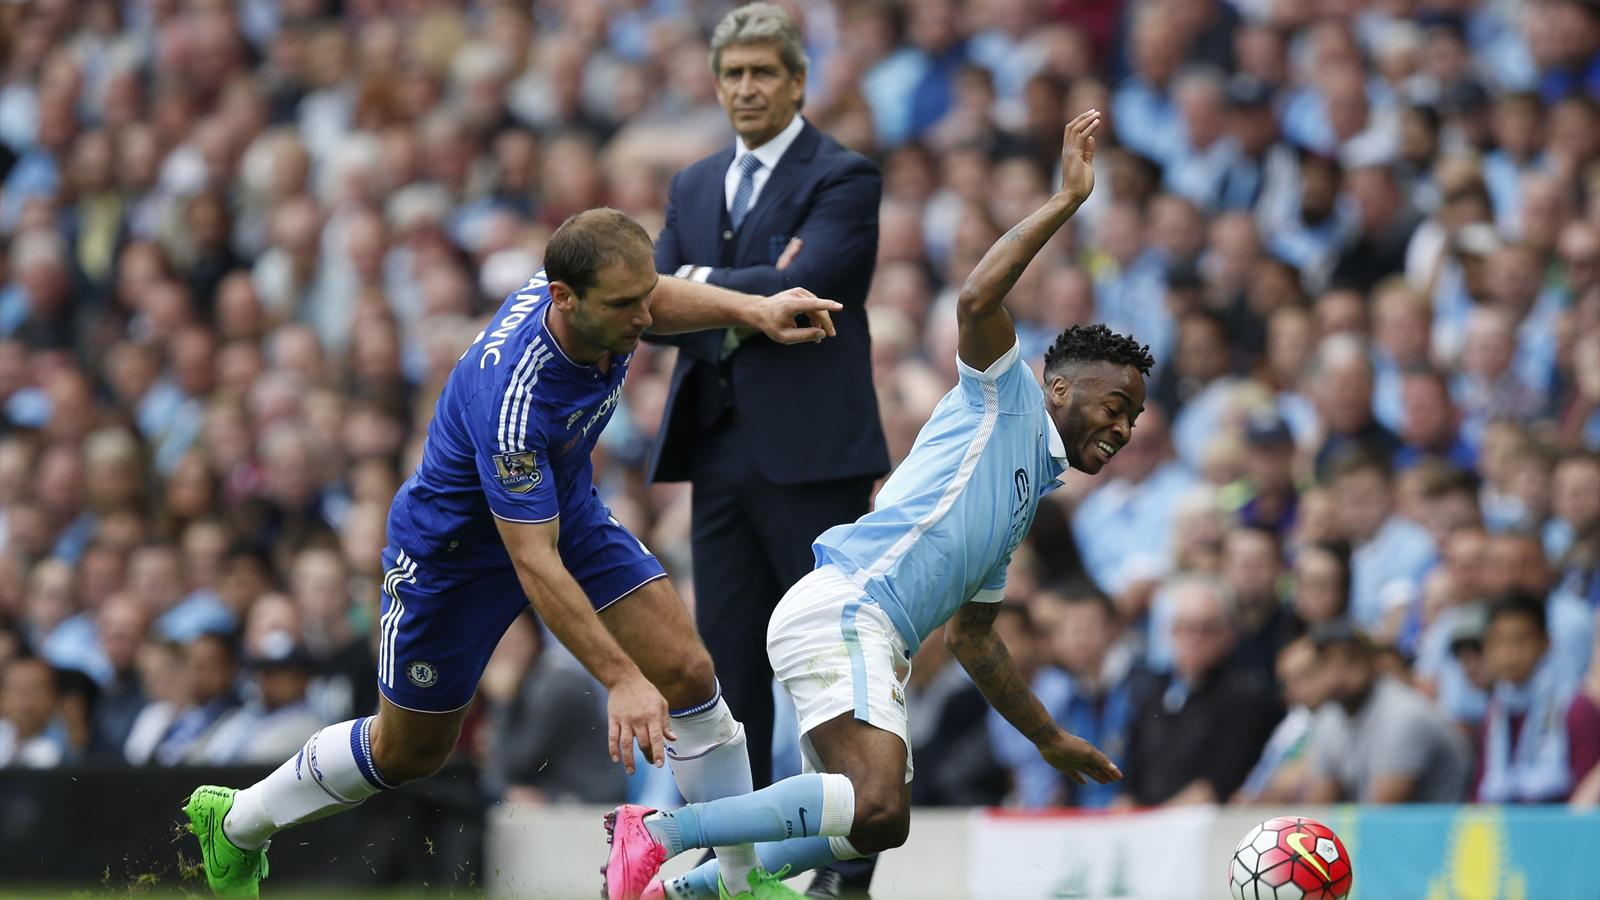 Chelsea's Branislav Ivanovic in action with Manchester City's Raheem Sterling watched by Manchester City manager Manuel Pellegrini